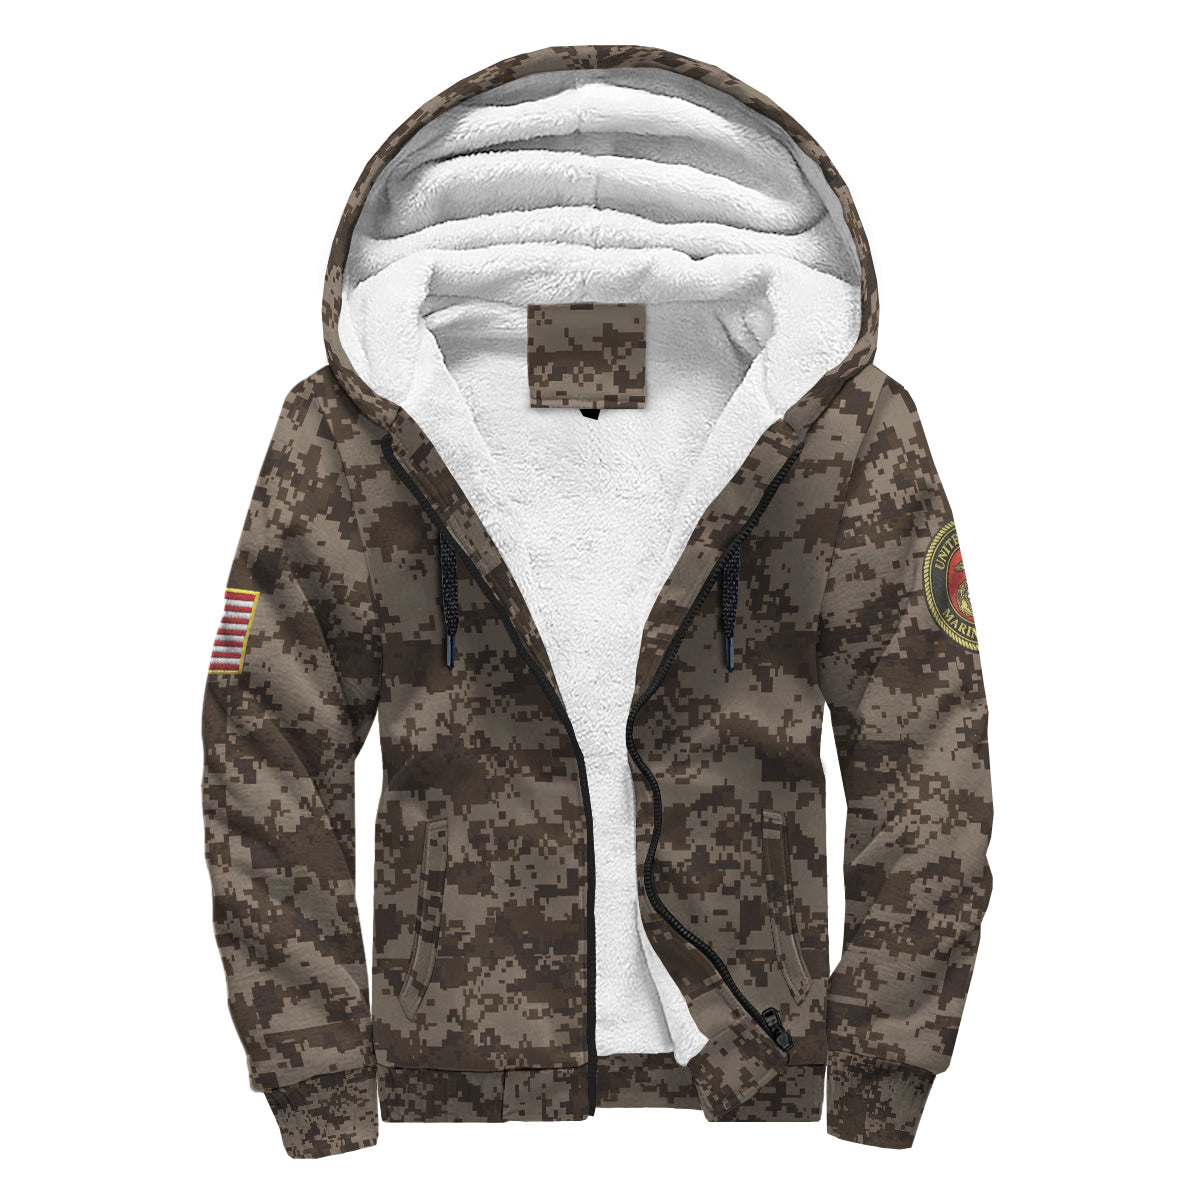 on the 7th day god created the marine sherpa hoodie